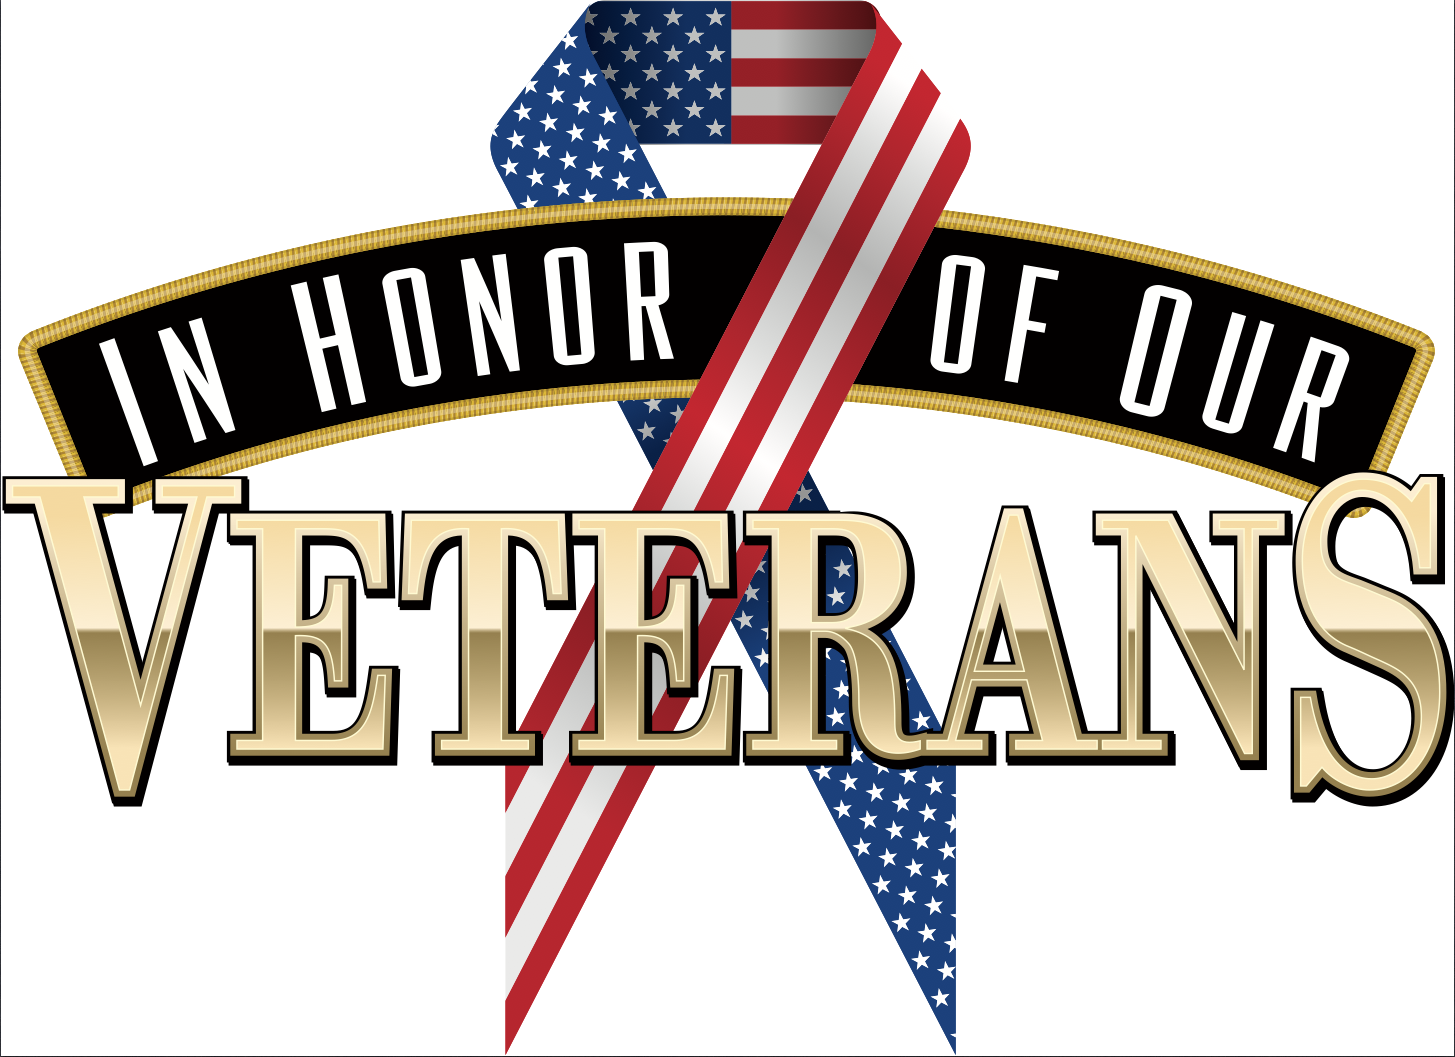 Veterans Day Clipart Images, Happy Veterans Day GIF 2018.